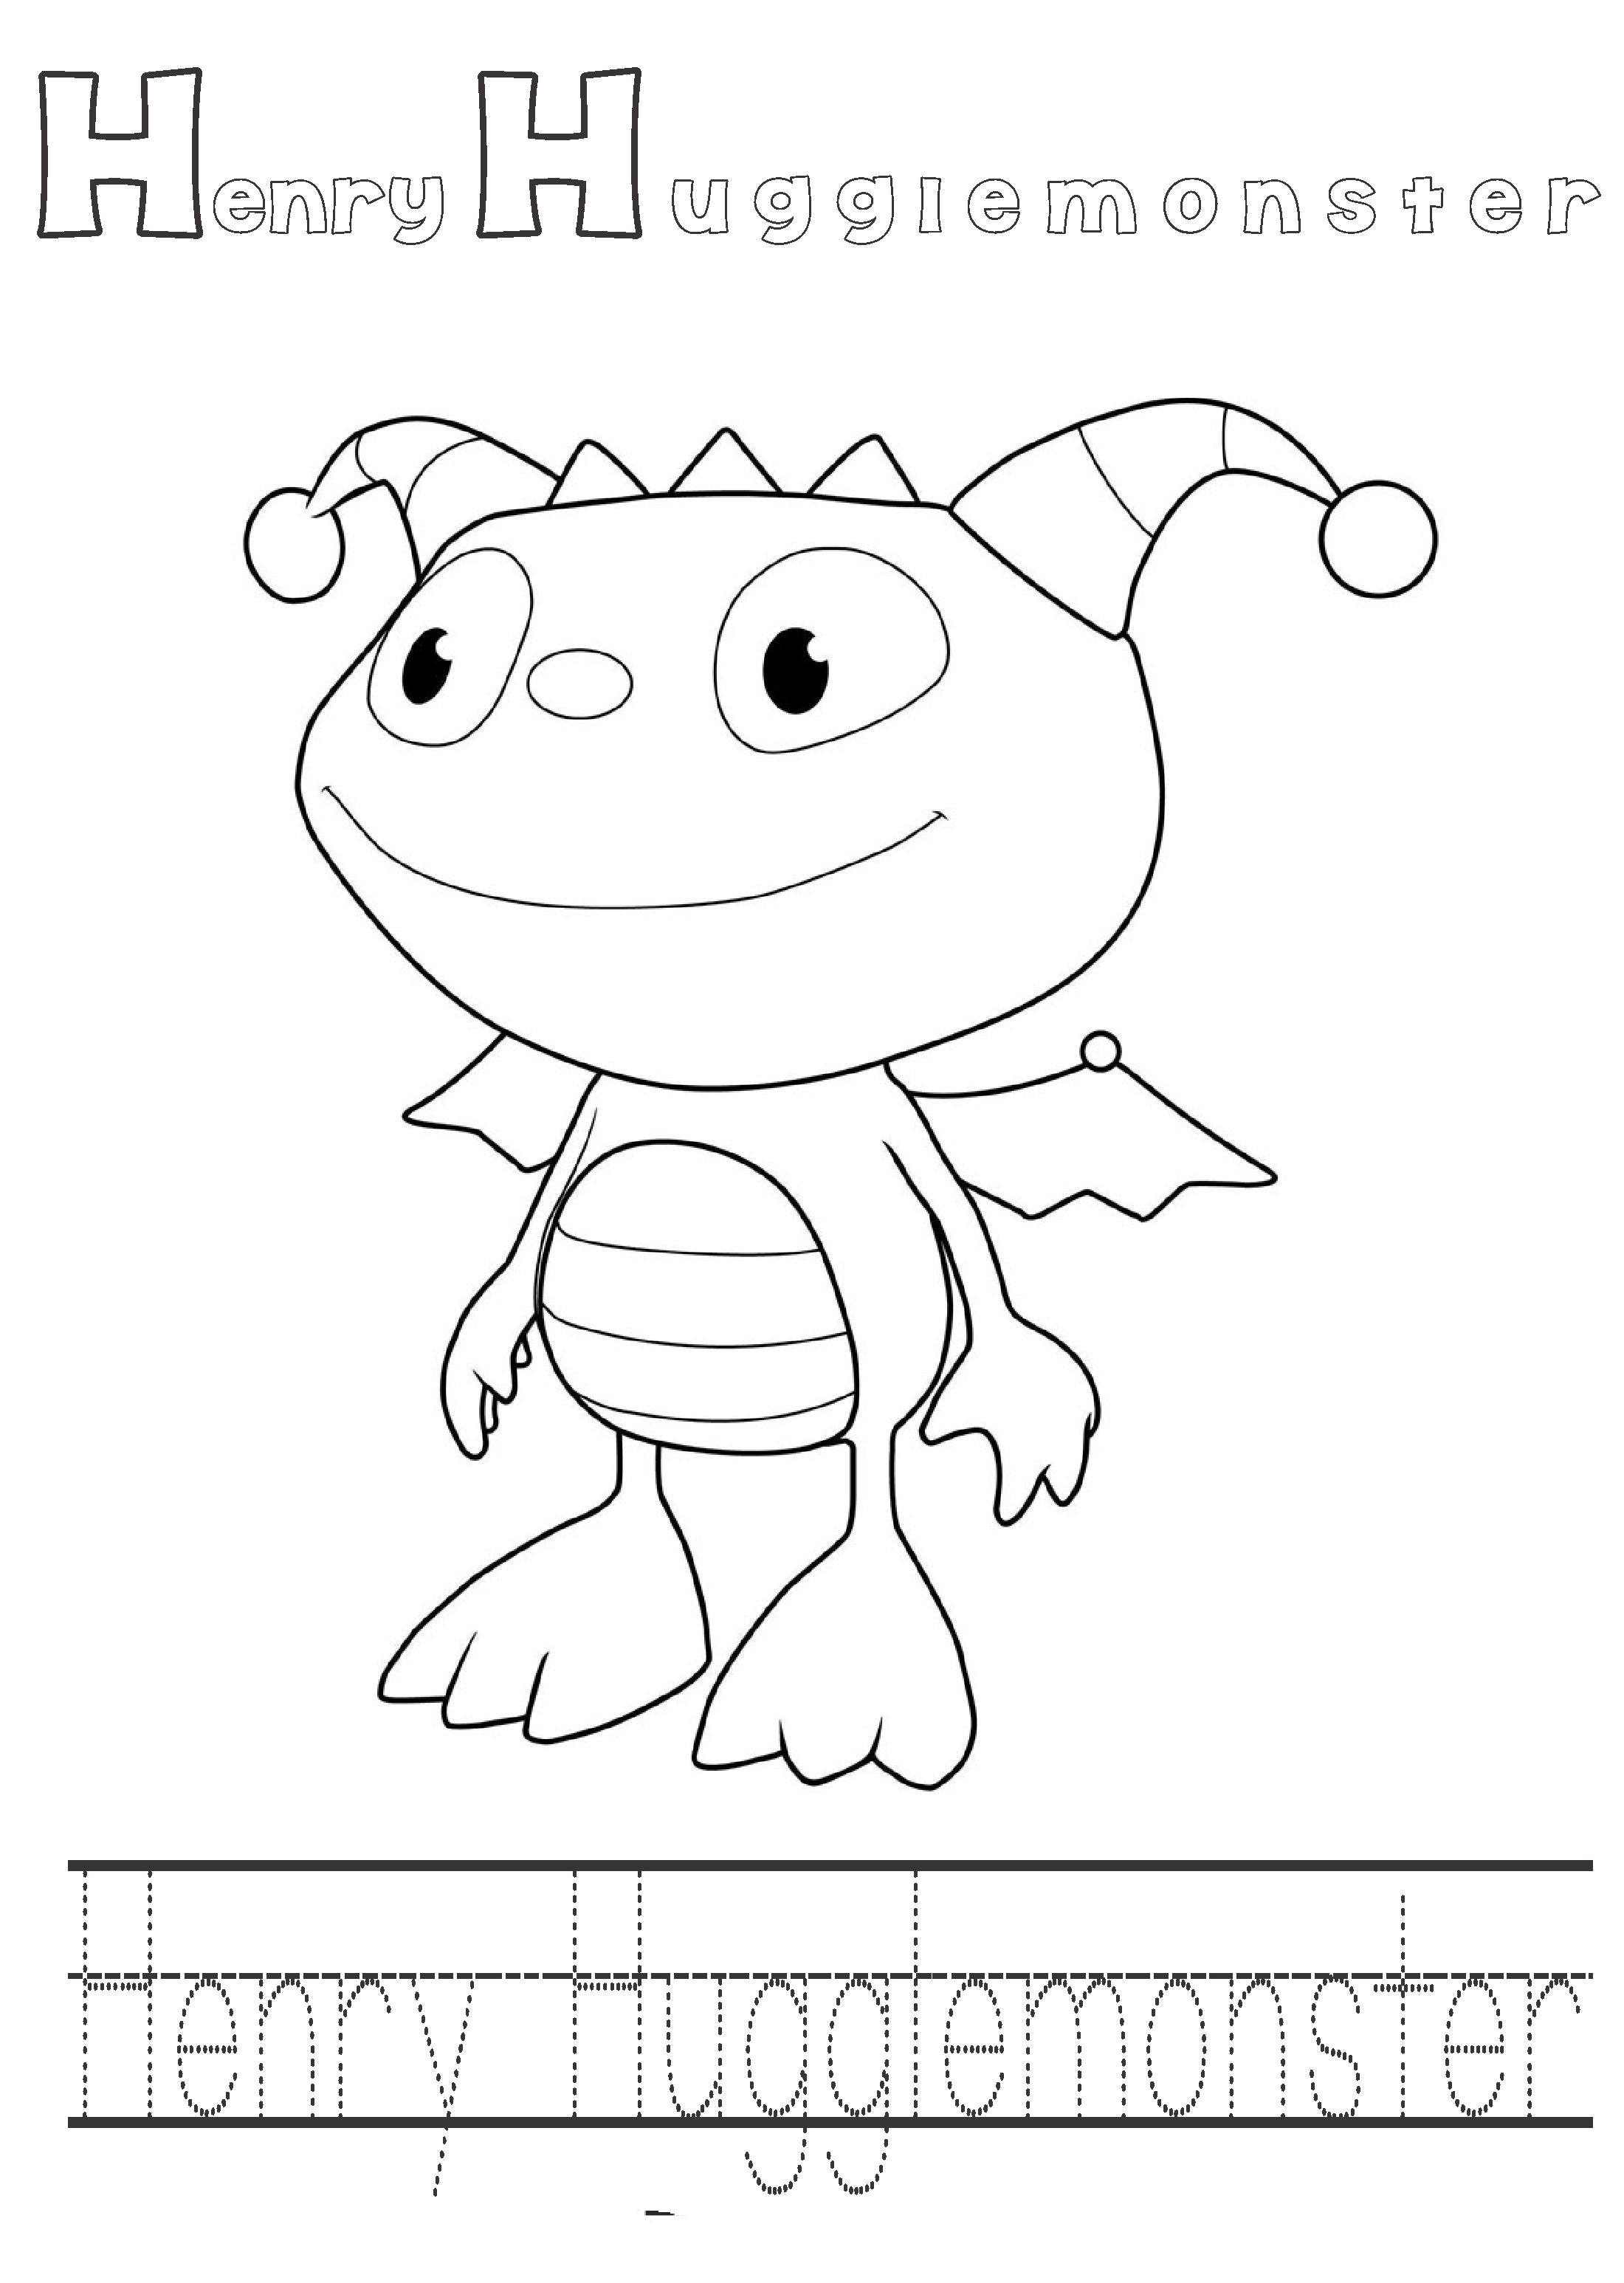 Printable Cartoon Henry Hugglemoster Coloring Pages For